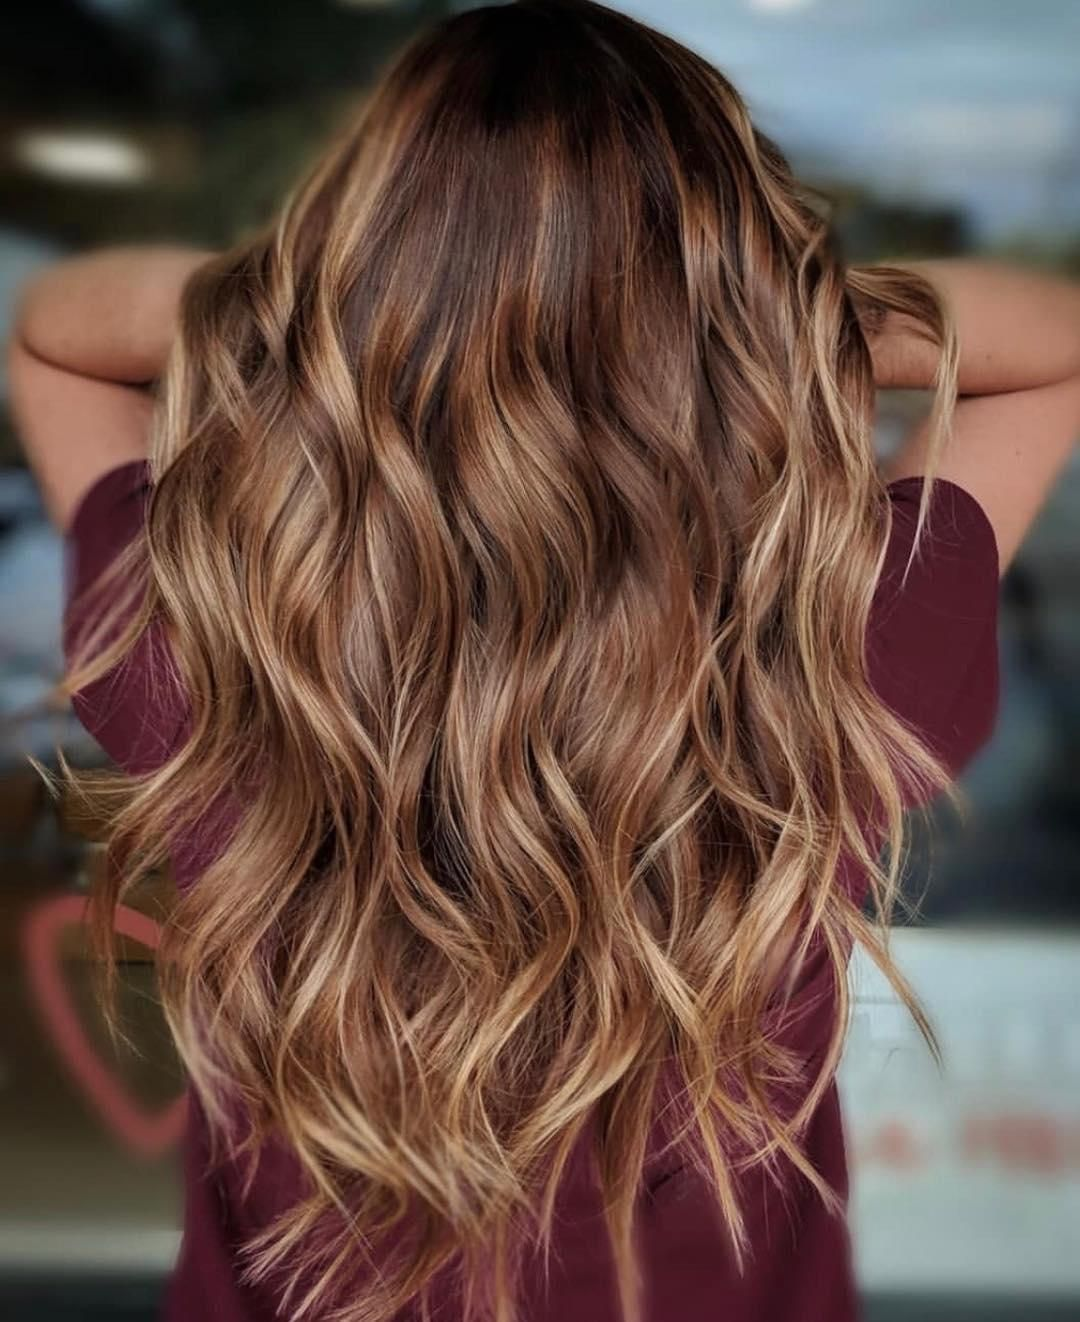 50 Best Hair Color Ideas Trends To Look Out For In 2021 According To Stylists Winter Hair Color Trends Winter Hair Color Winter Hairstyles